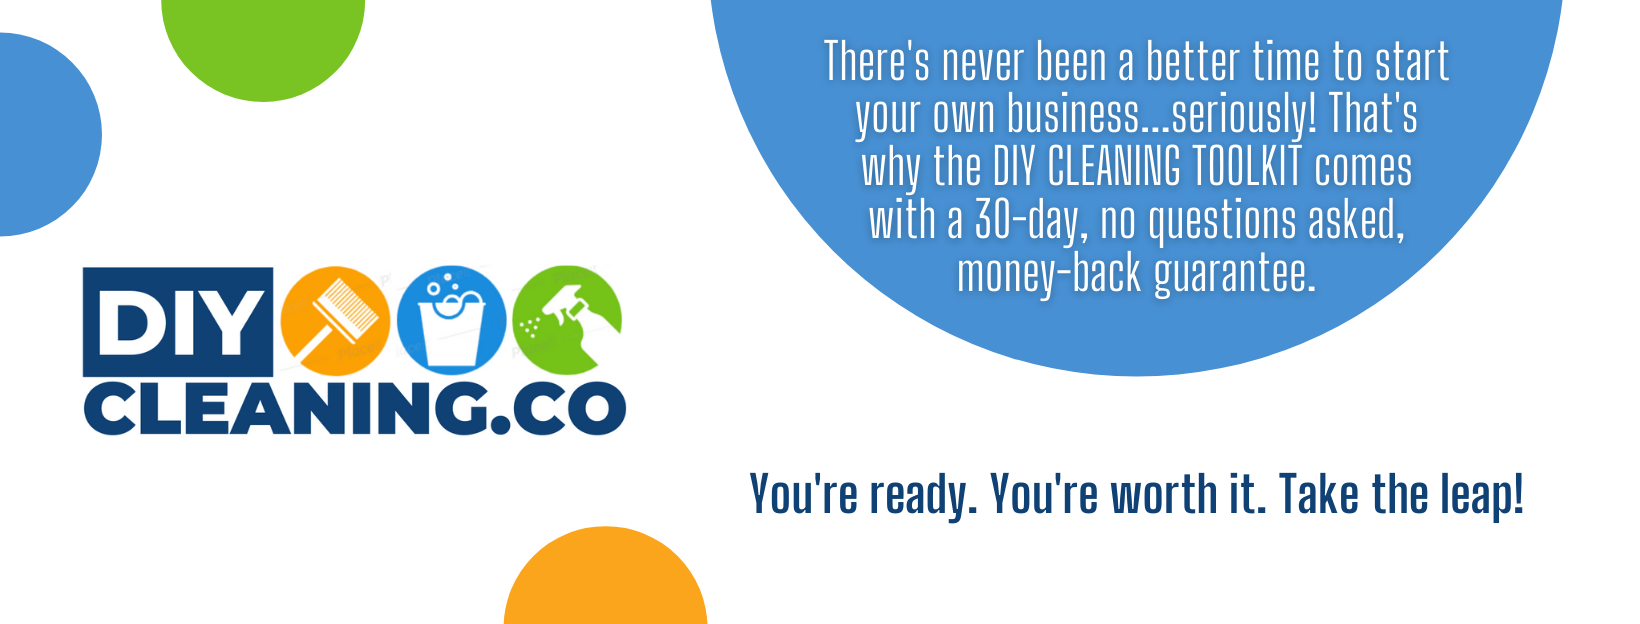 start a successful cleaning business with a 30-day money-back guarantee